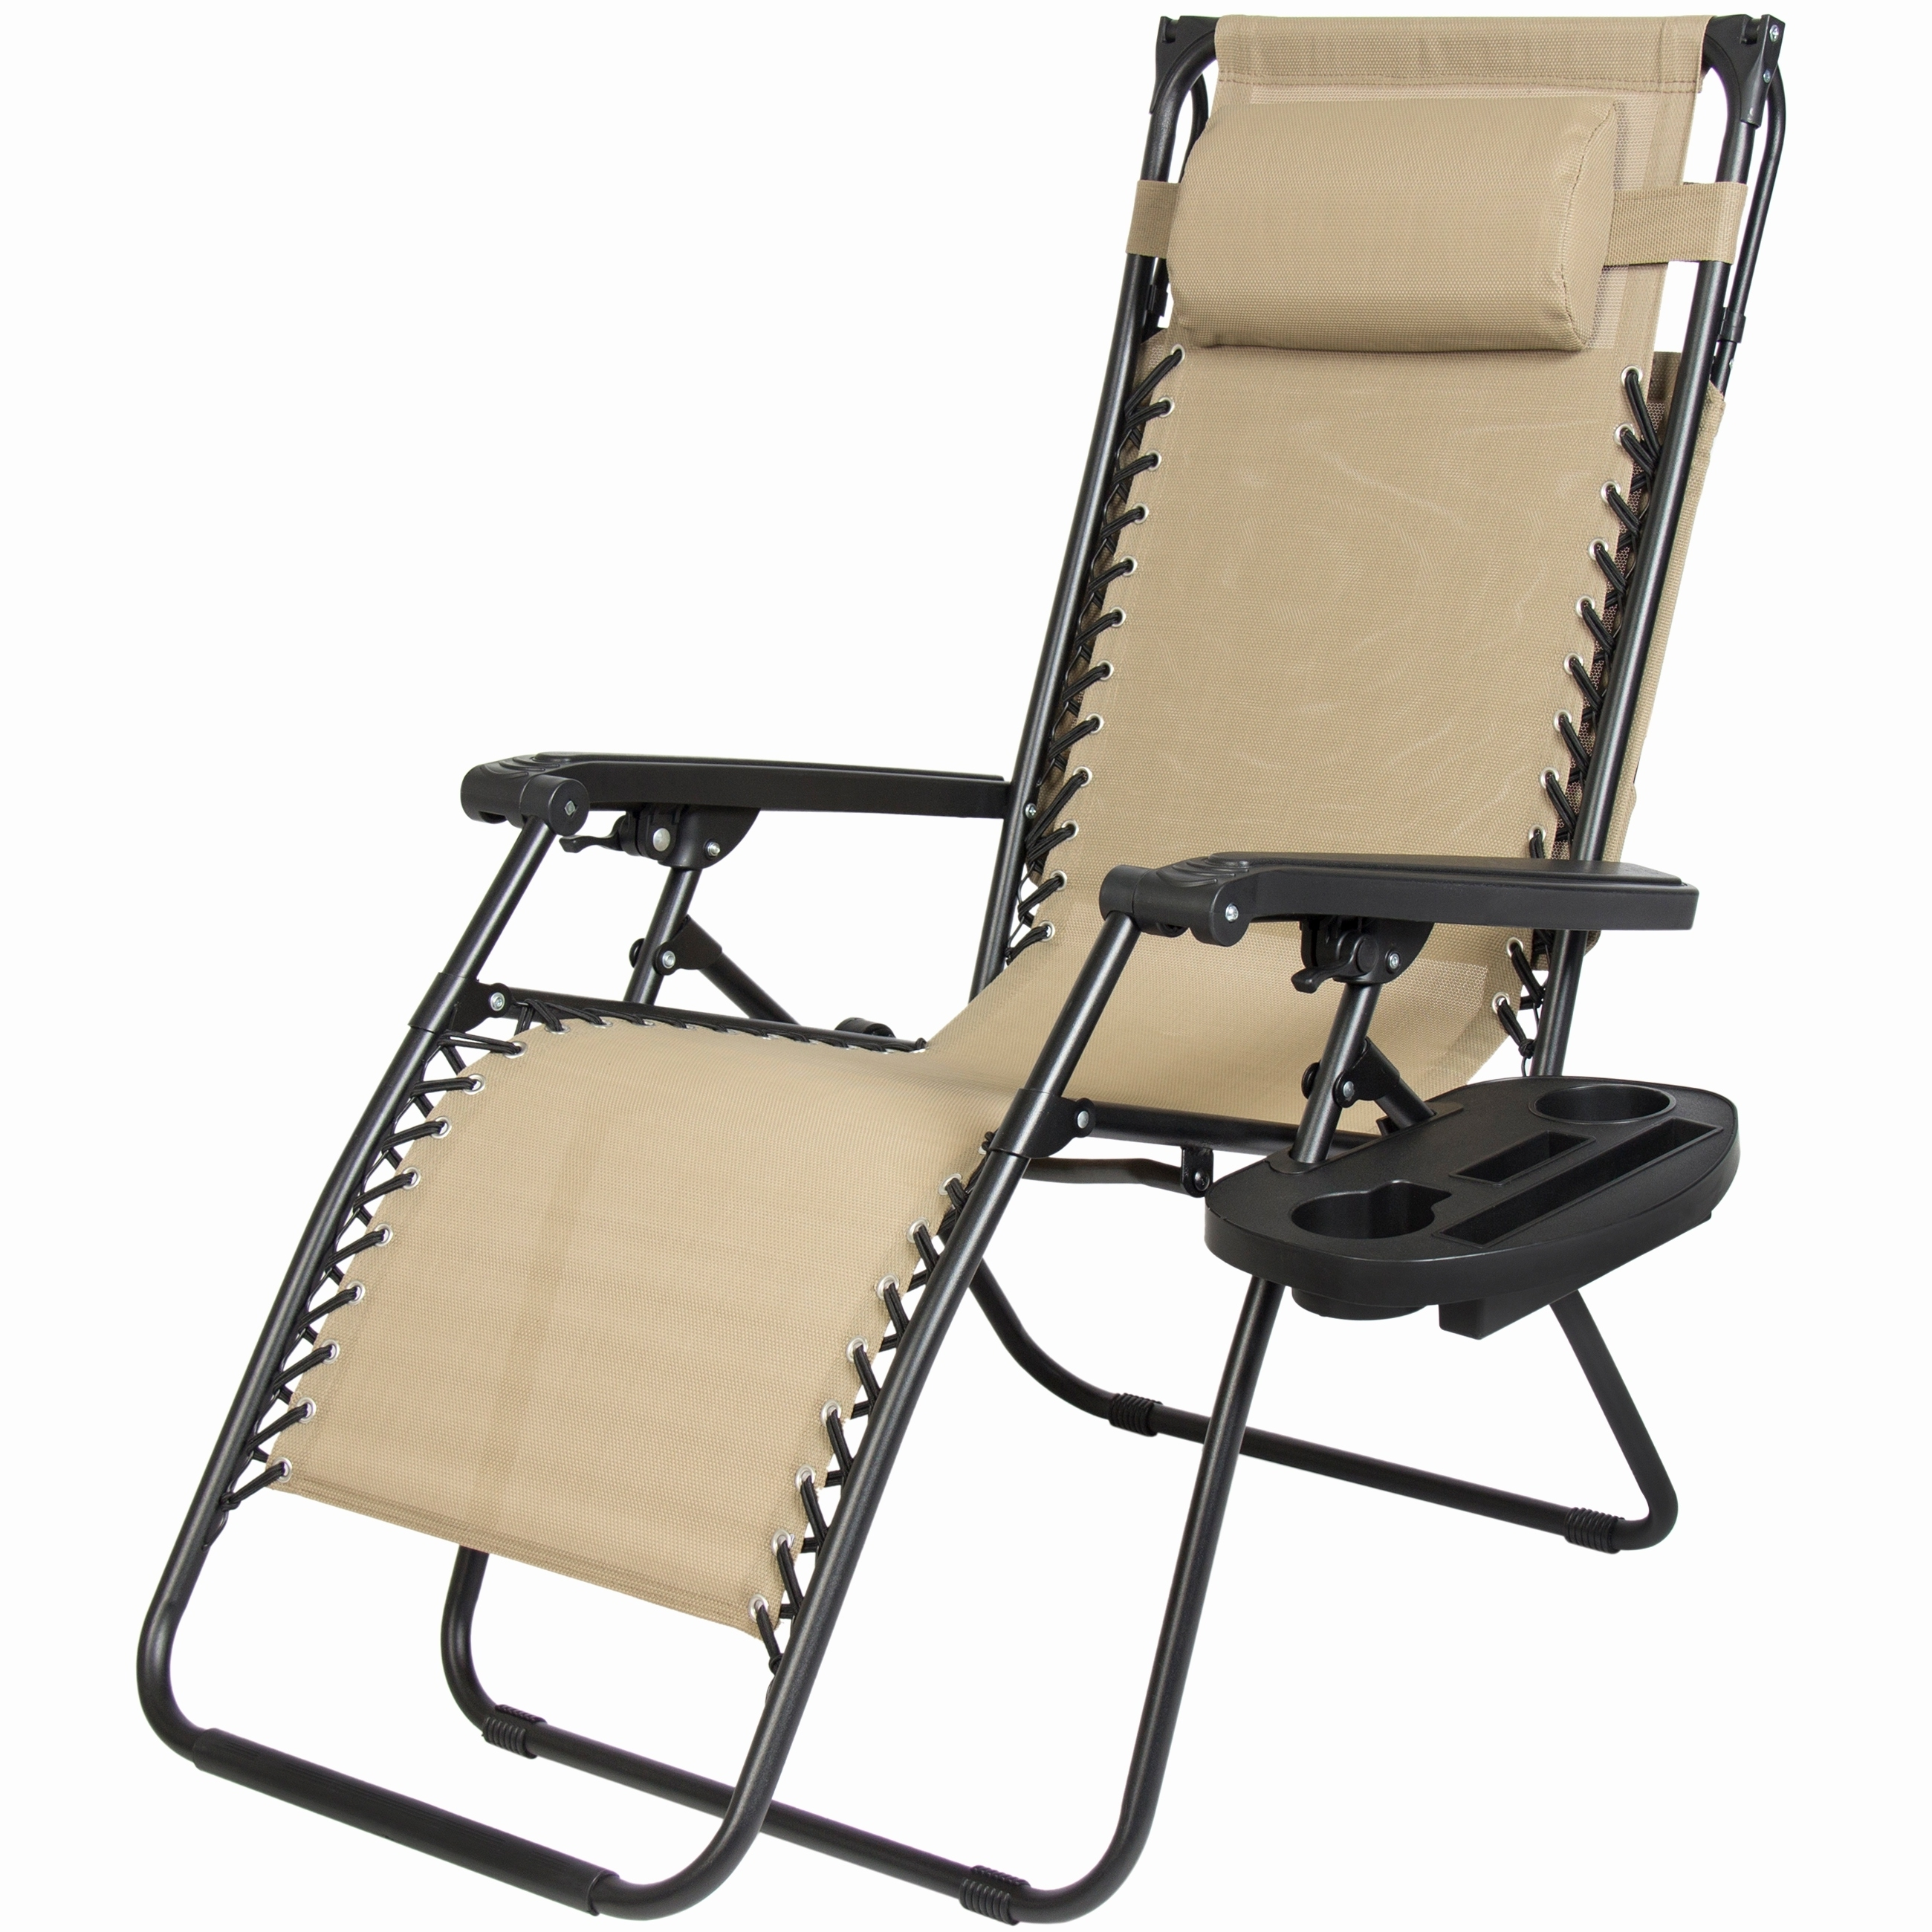 Folding Chaise Lounge Chairs Outdoor Patio Chaise Lounge Chairs